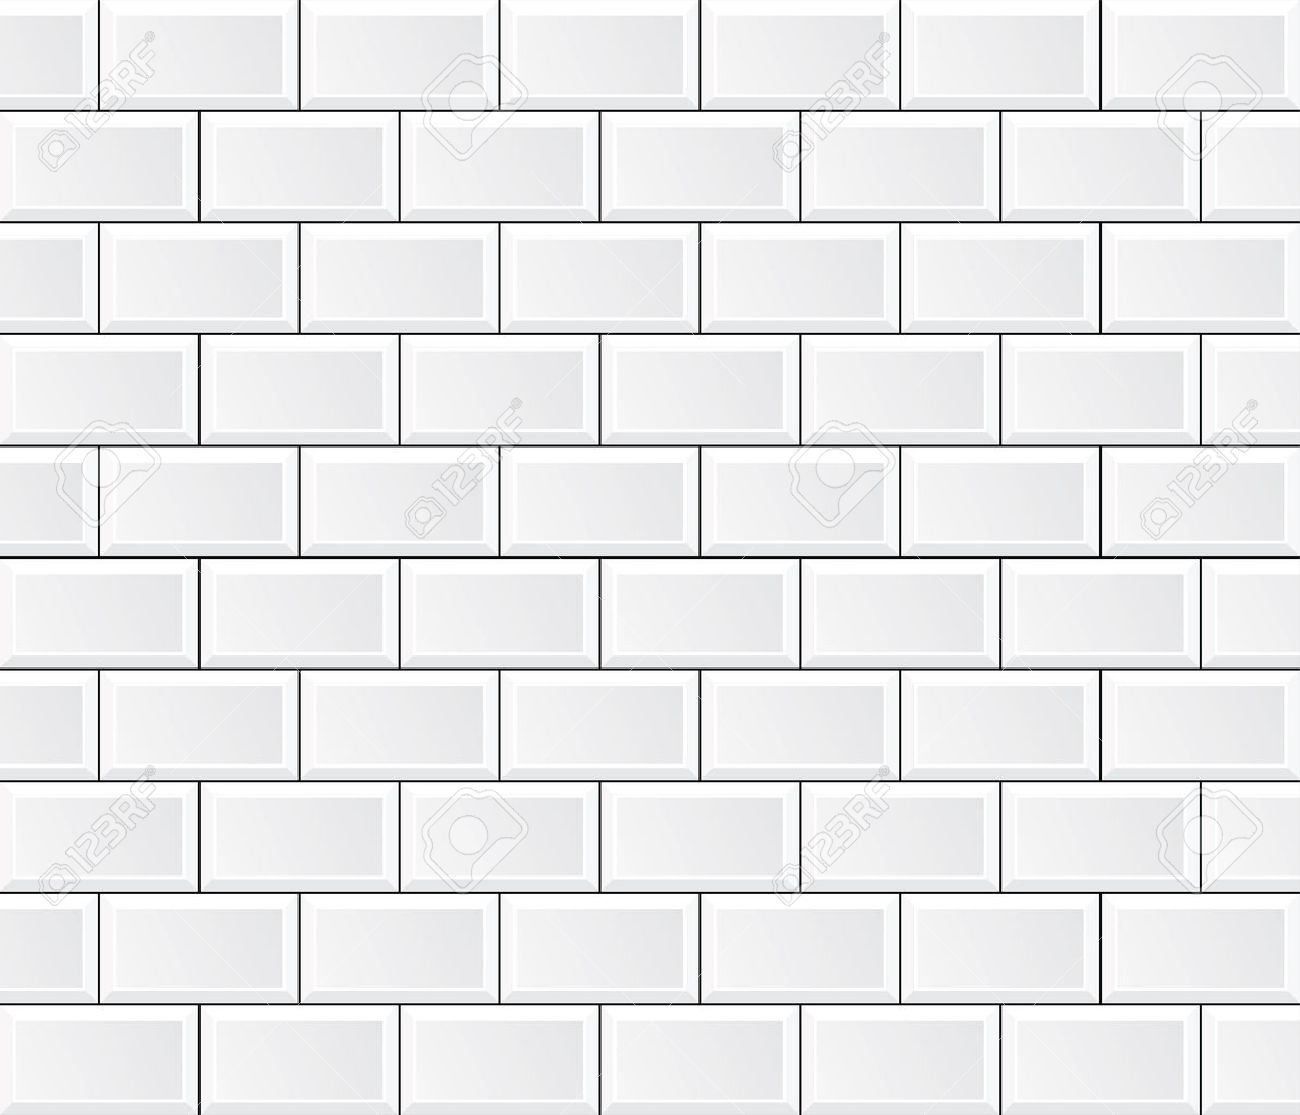 White Tile Pleasing Vector White Tile Wall Royalty Free Cliparts Vectors And Stock 2017